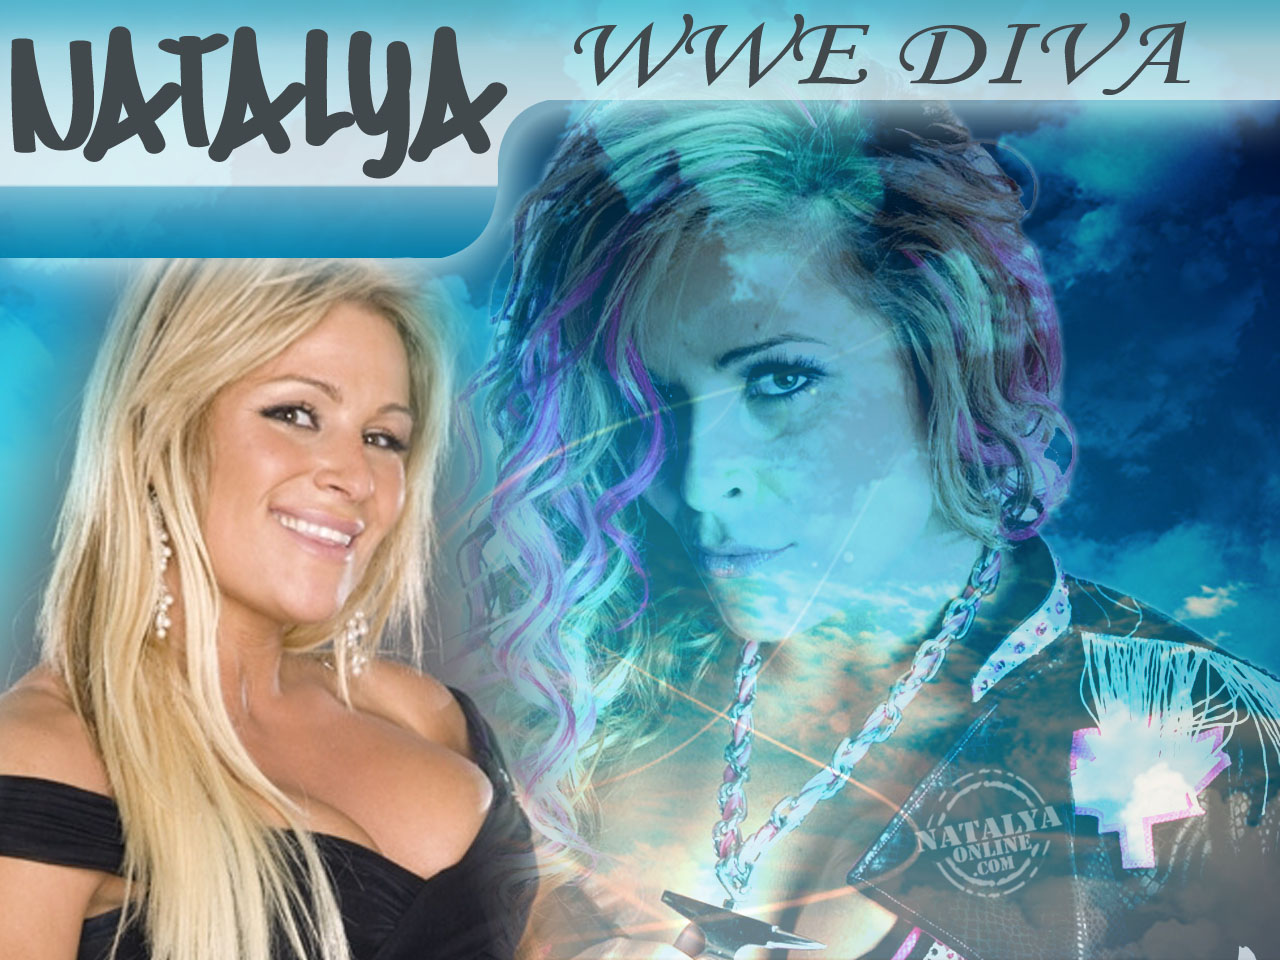 Wwe natalya hd wallpapers 2012 wrestling all stars - Wwe divas wallpapers ...